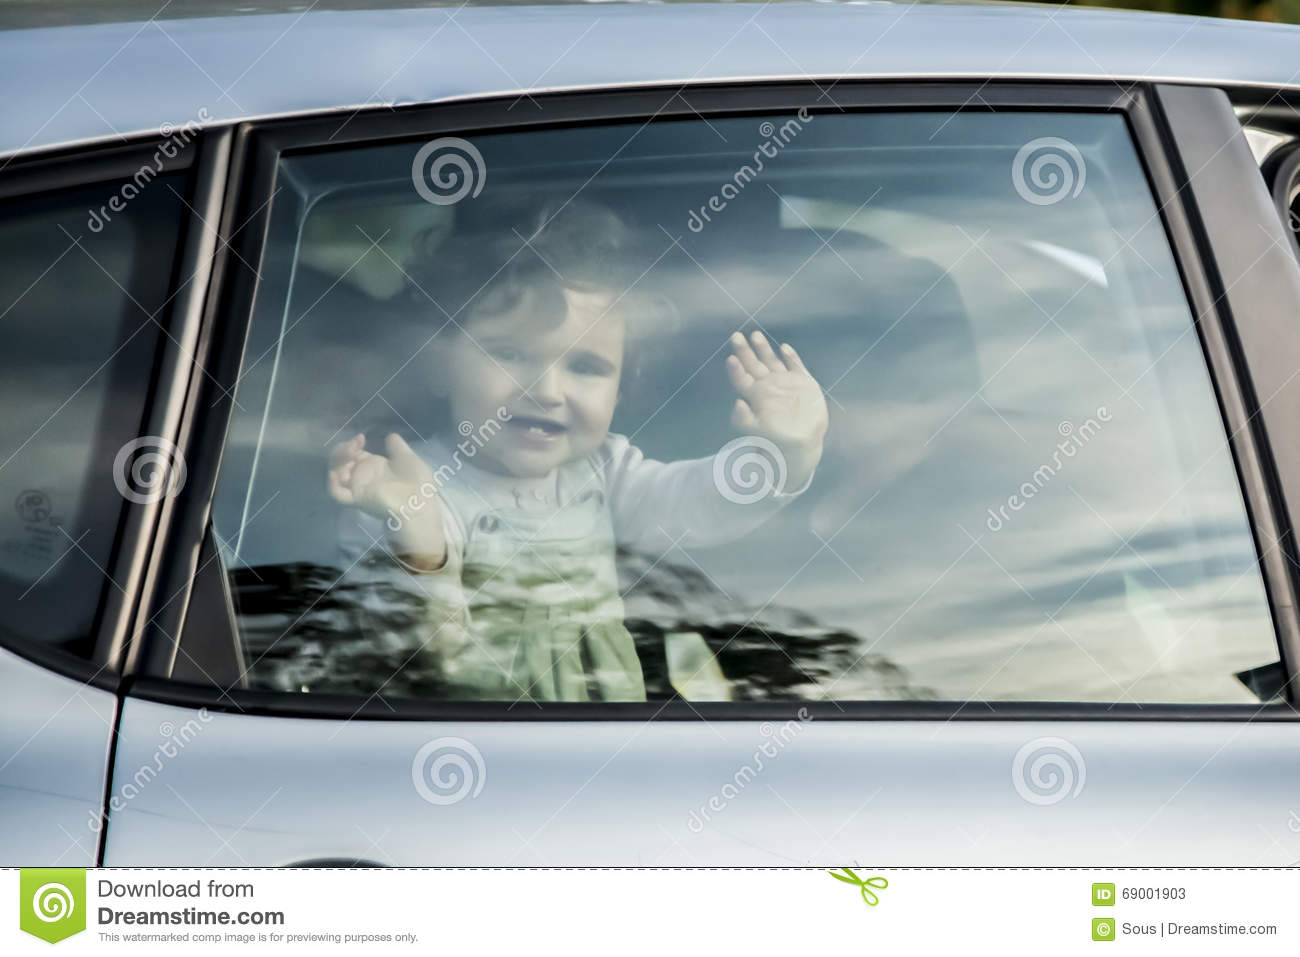 B b souriant regardant une fen tre de voiture photo stock for Fenetre voiture